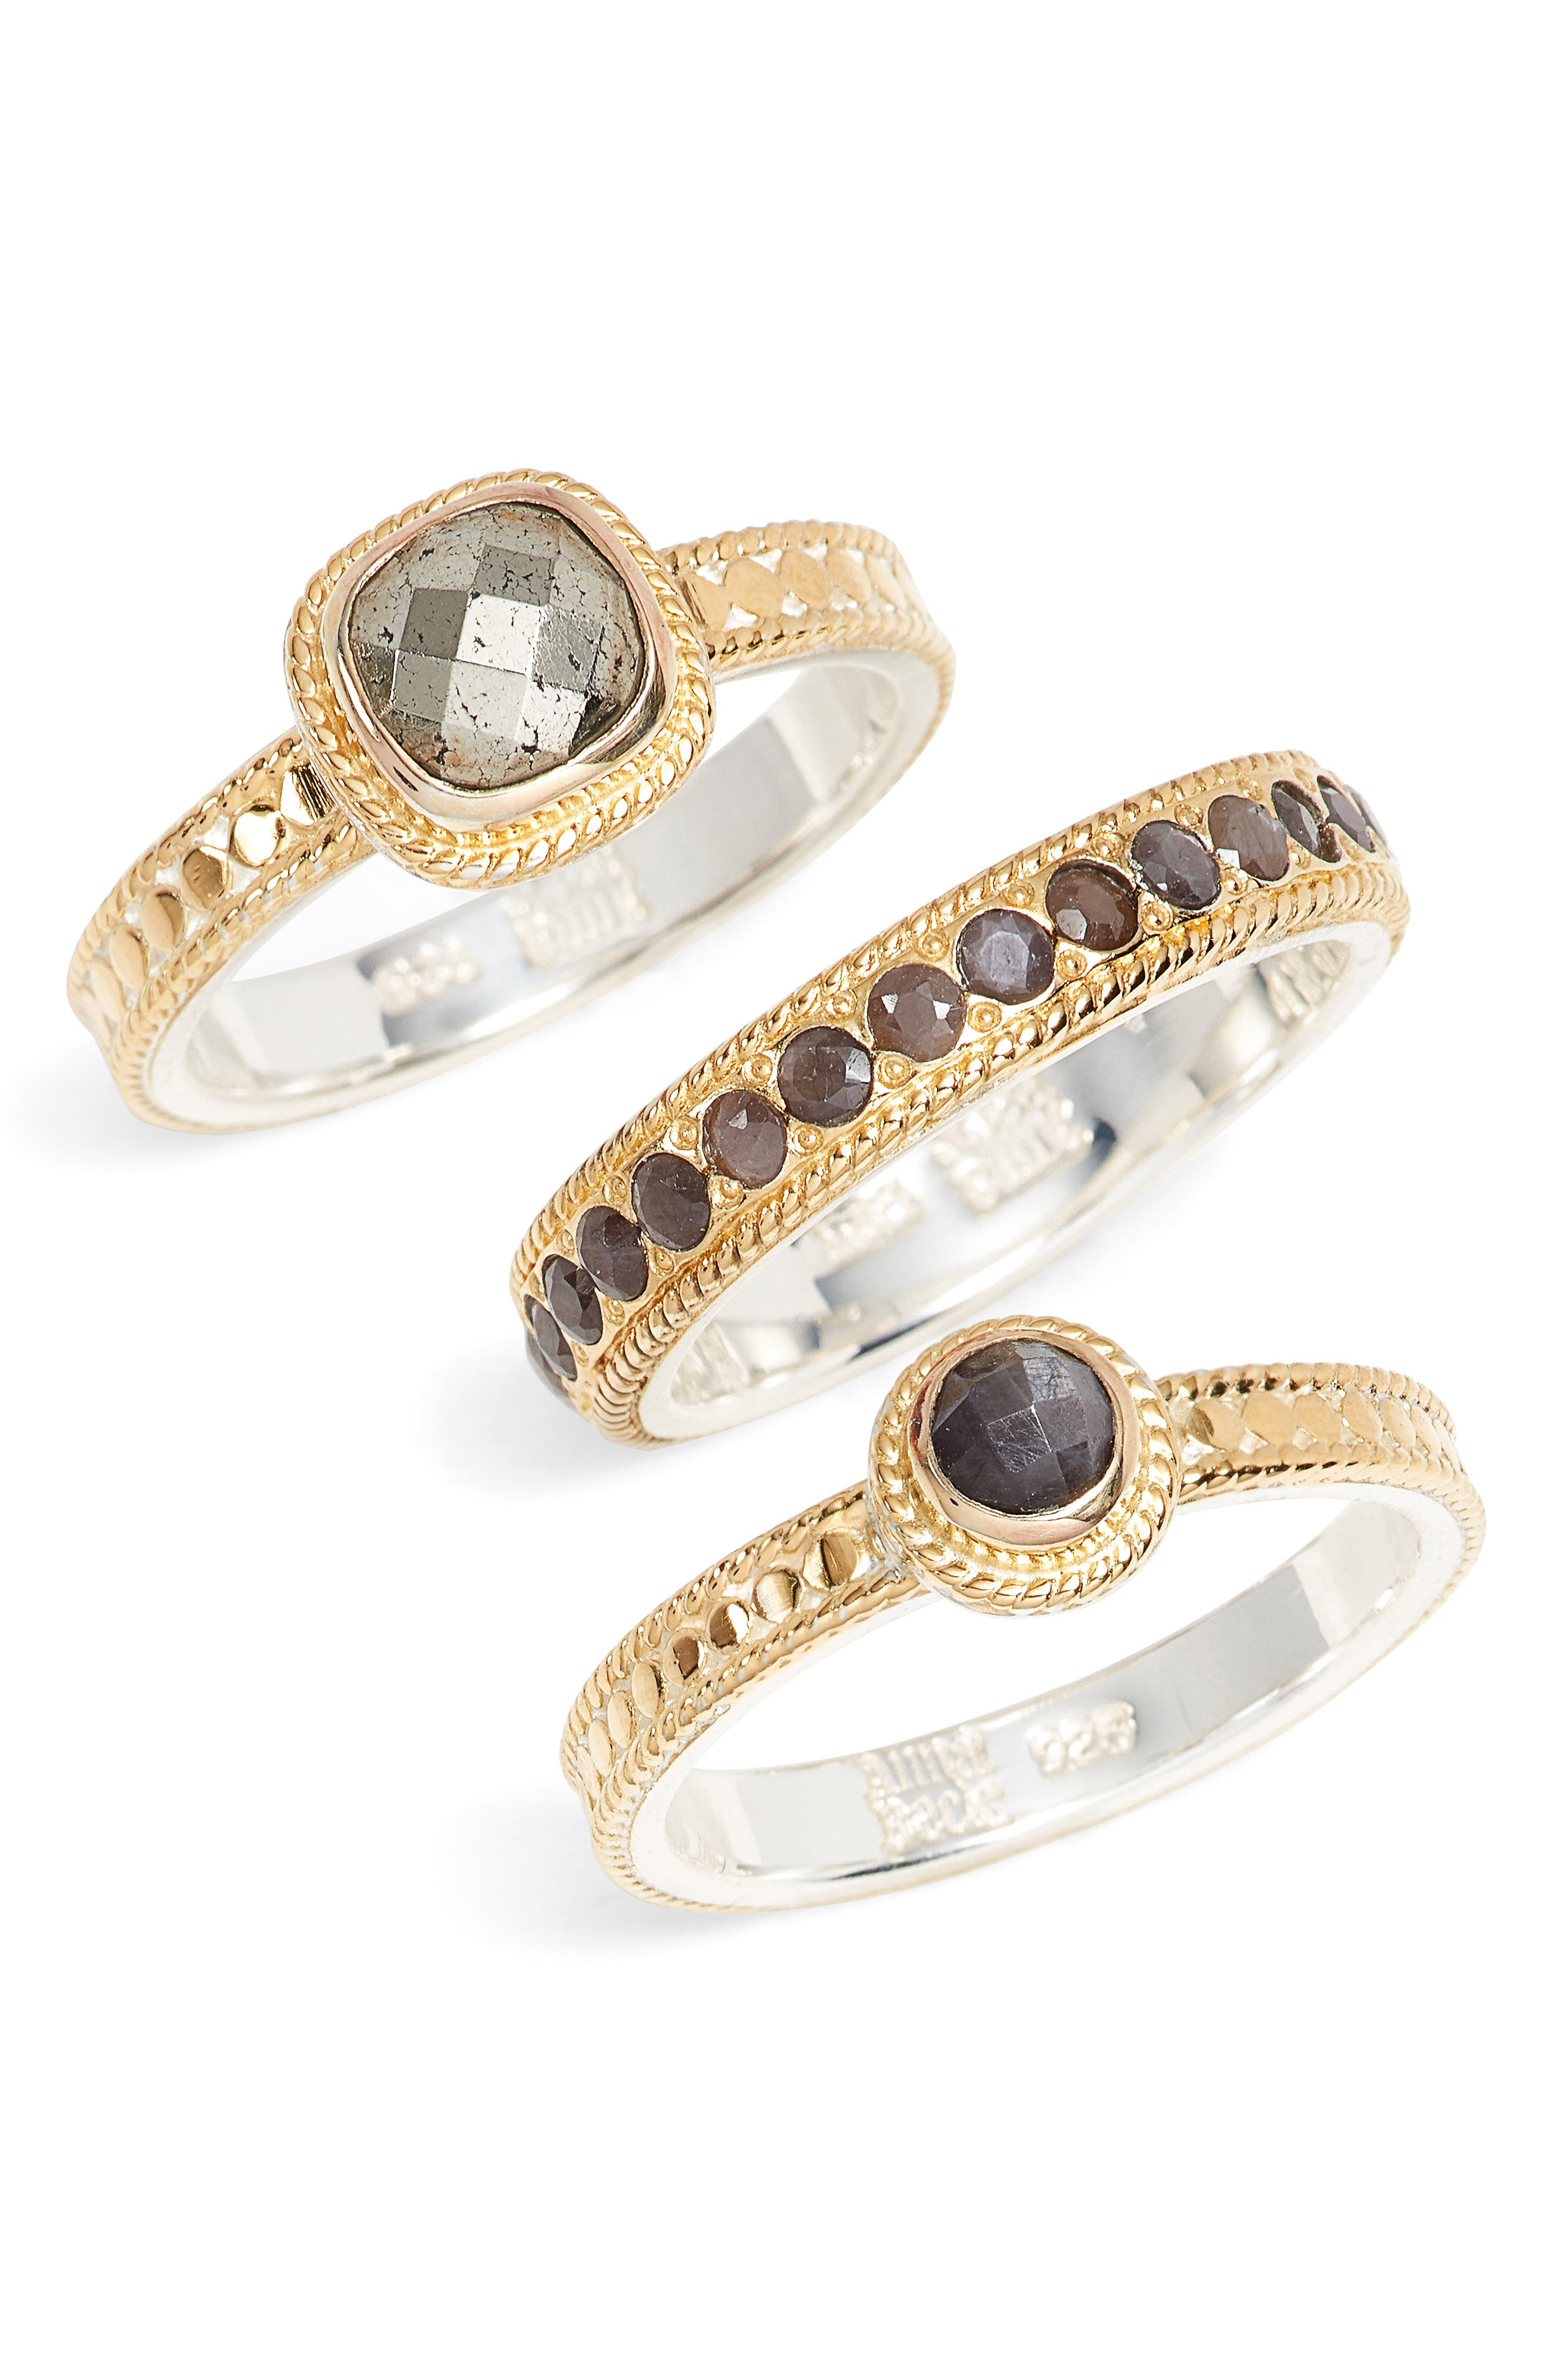 Grey Sapphire & Pyrite Stack Rings,                         Main,                         color, Gold/ Silver/ Grey/ Pyrite